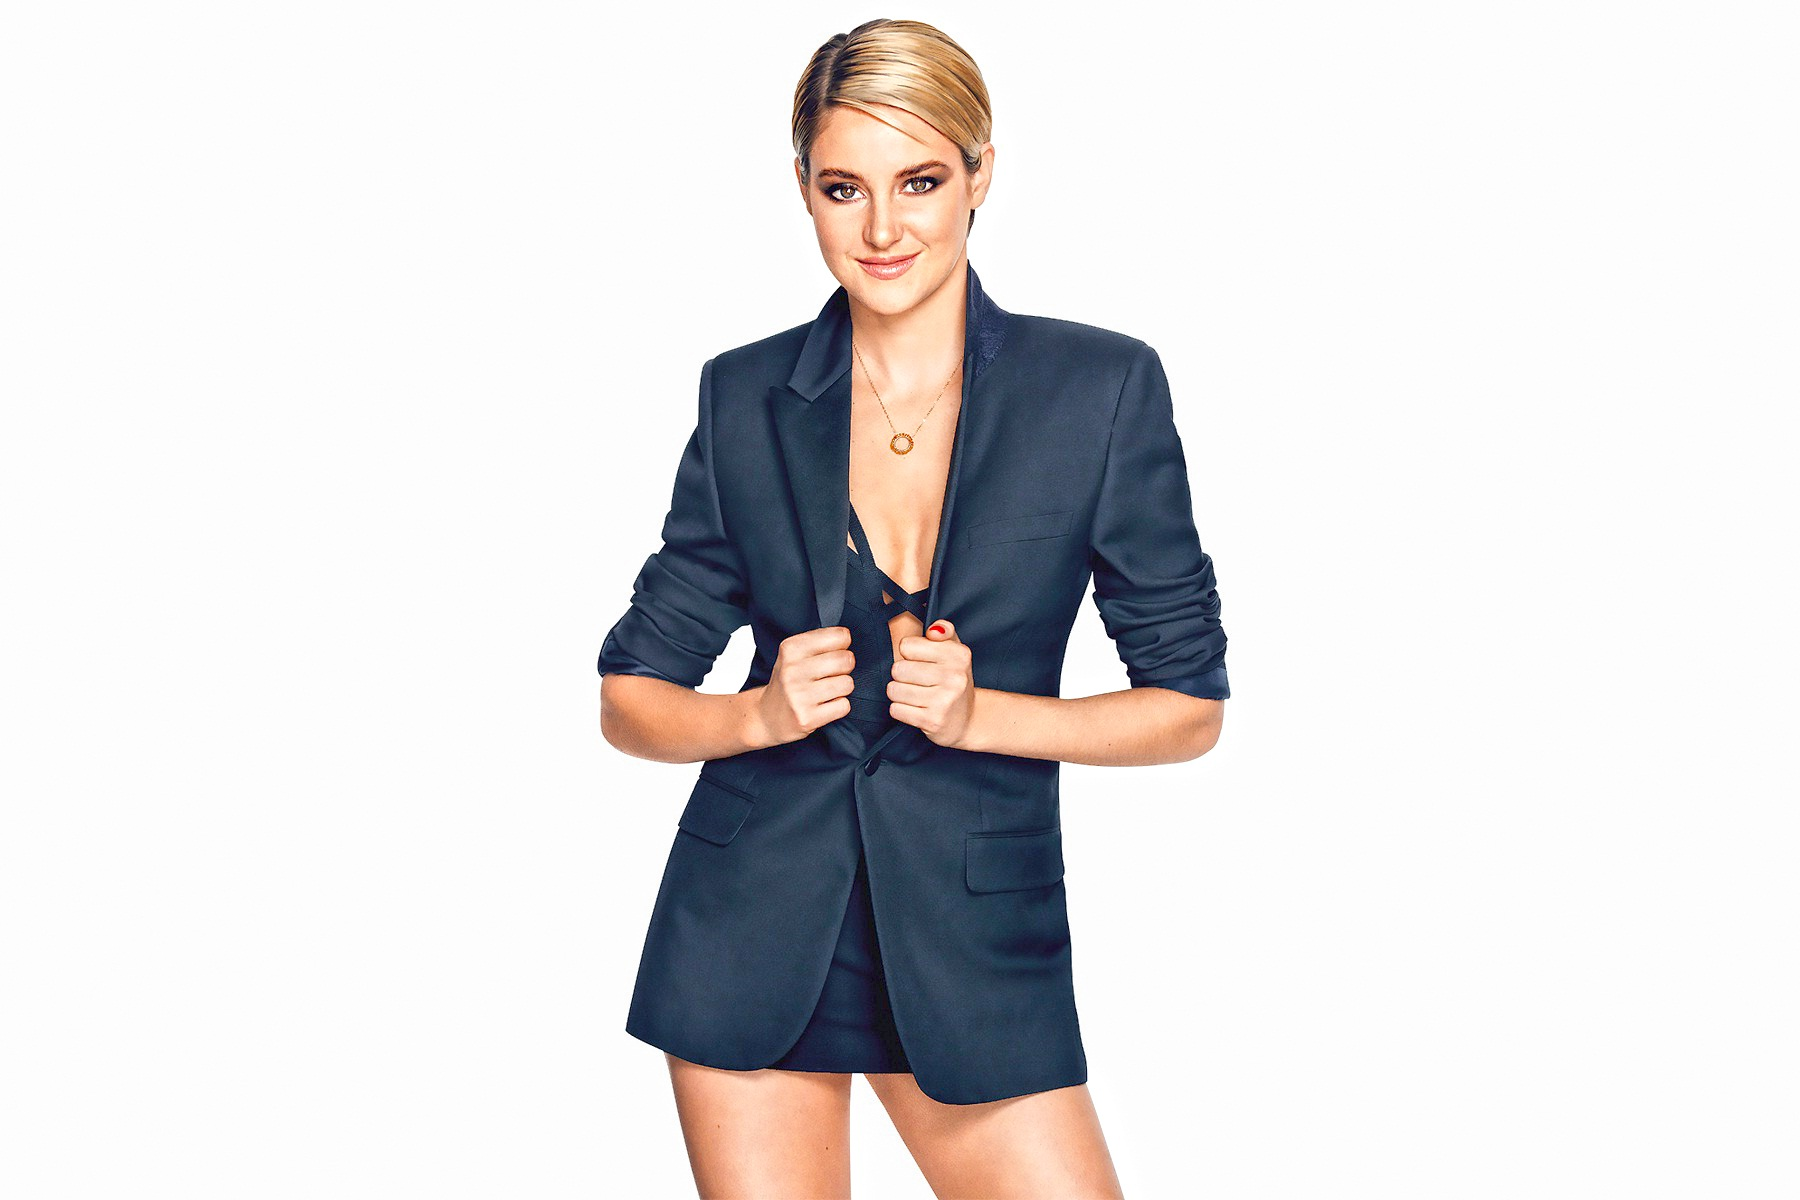 Shailene Woodley in a jacket - Shailene Woodley Net Worth, Movies, Family, Private Life, Pictures and Wallpapers